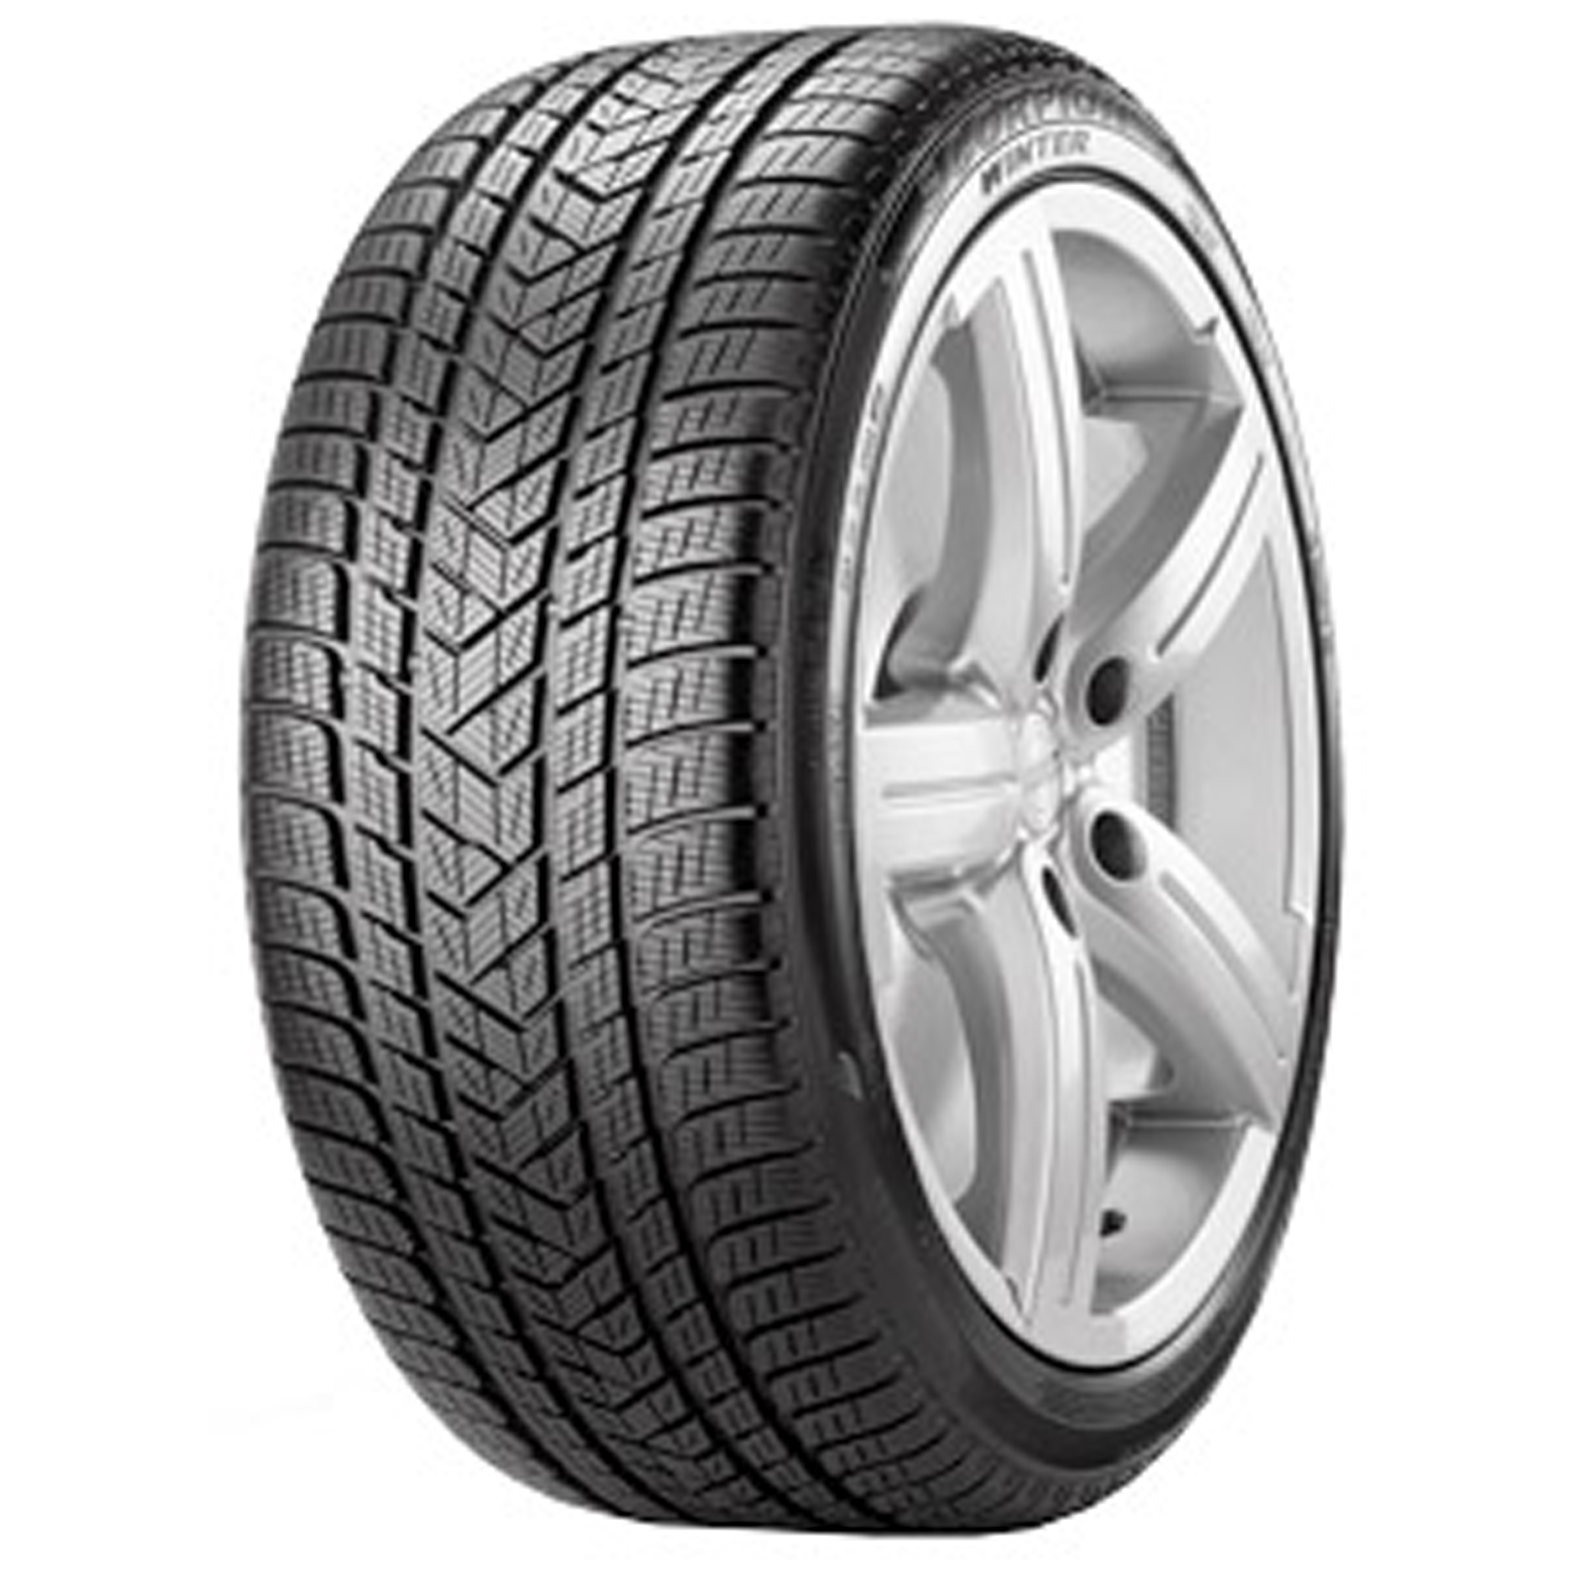 Pirelli Scorpion Winter tire - angle